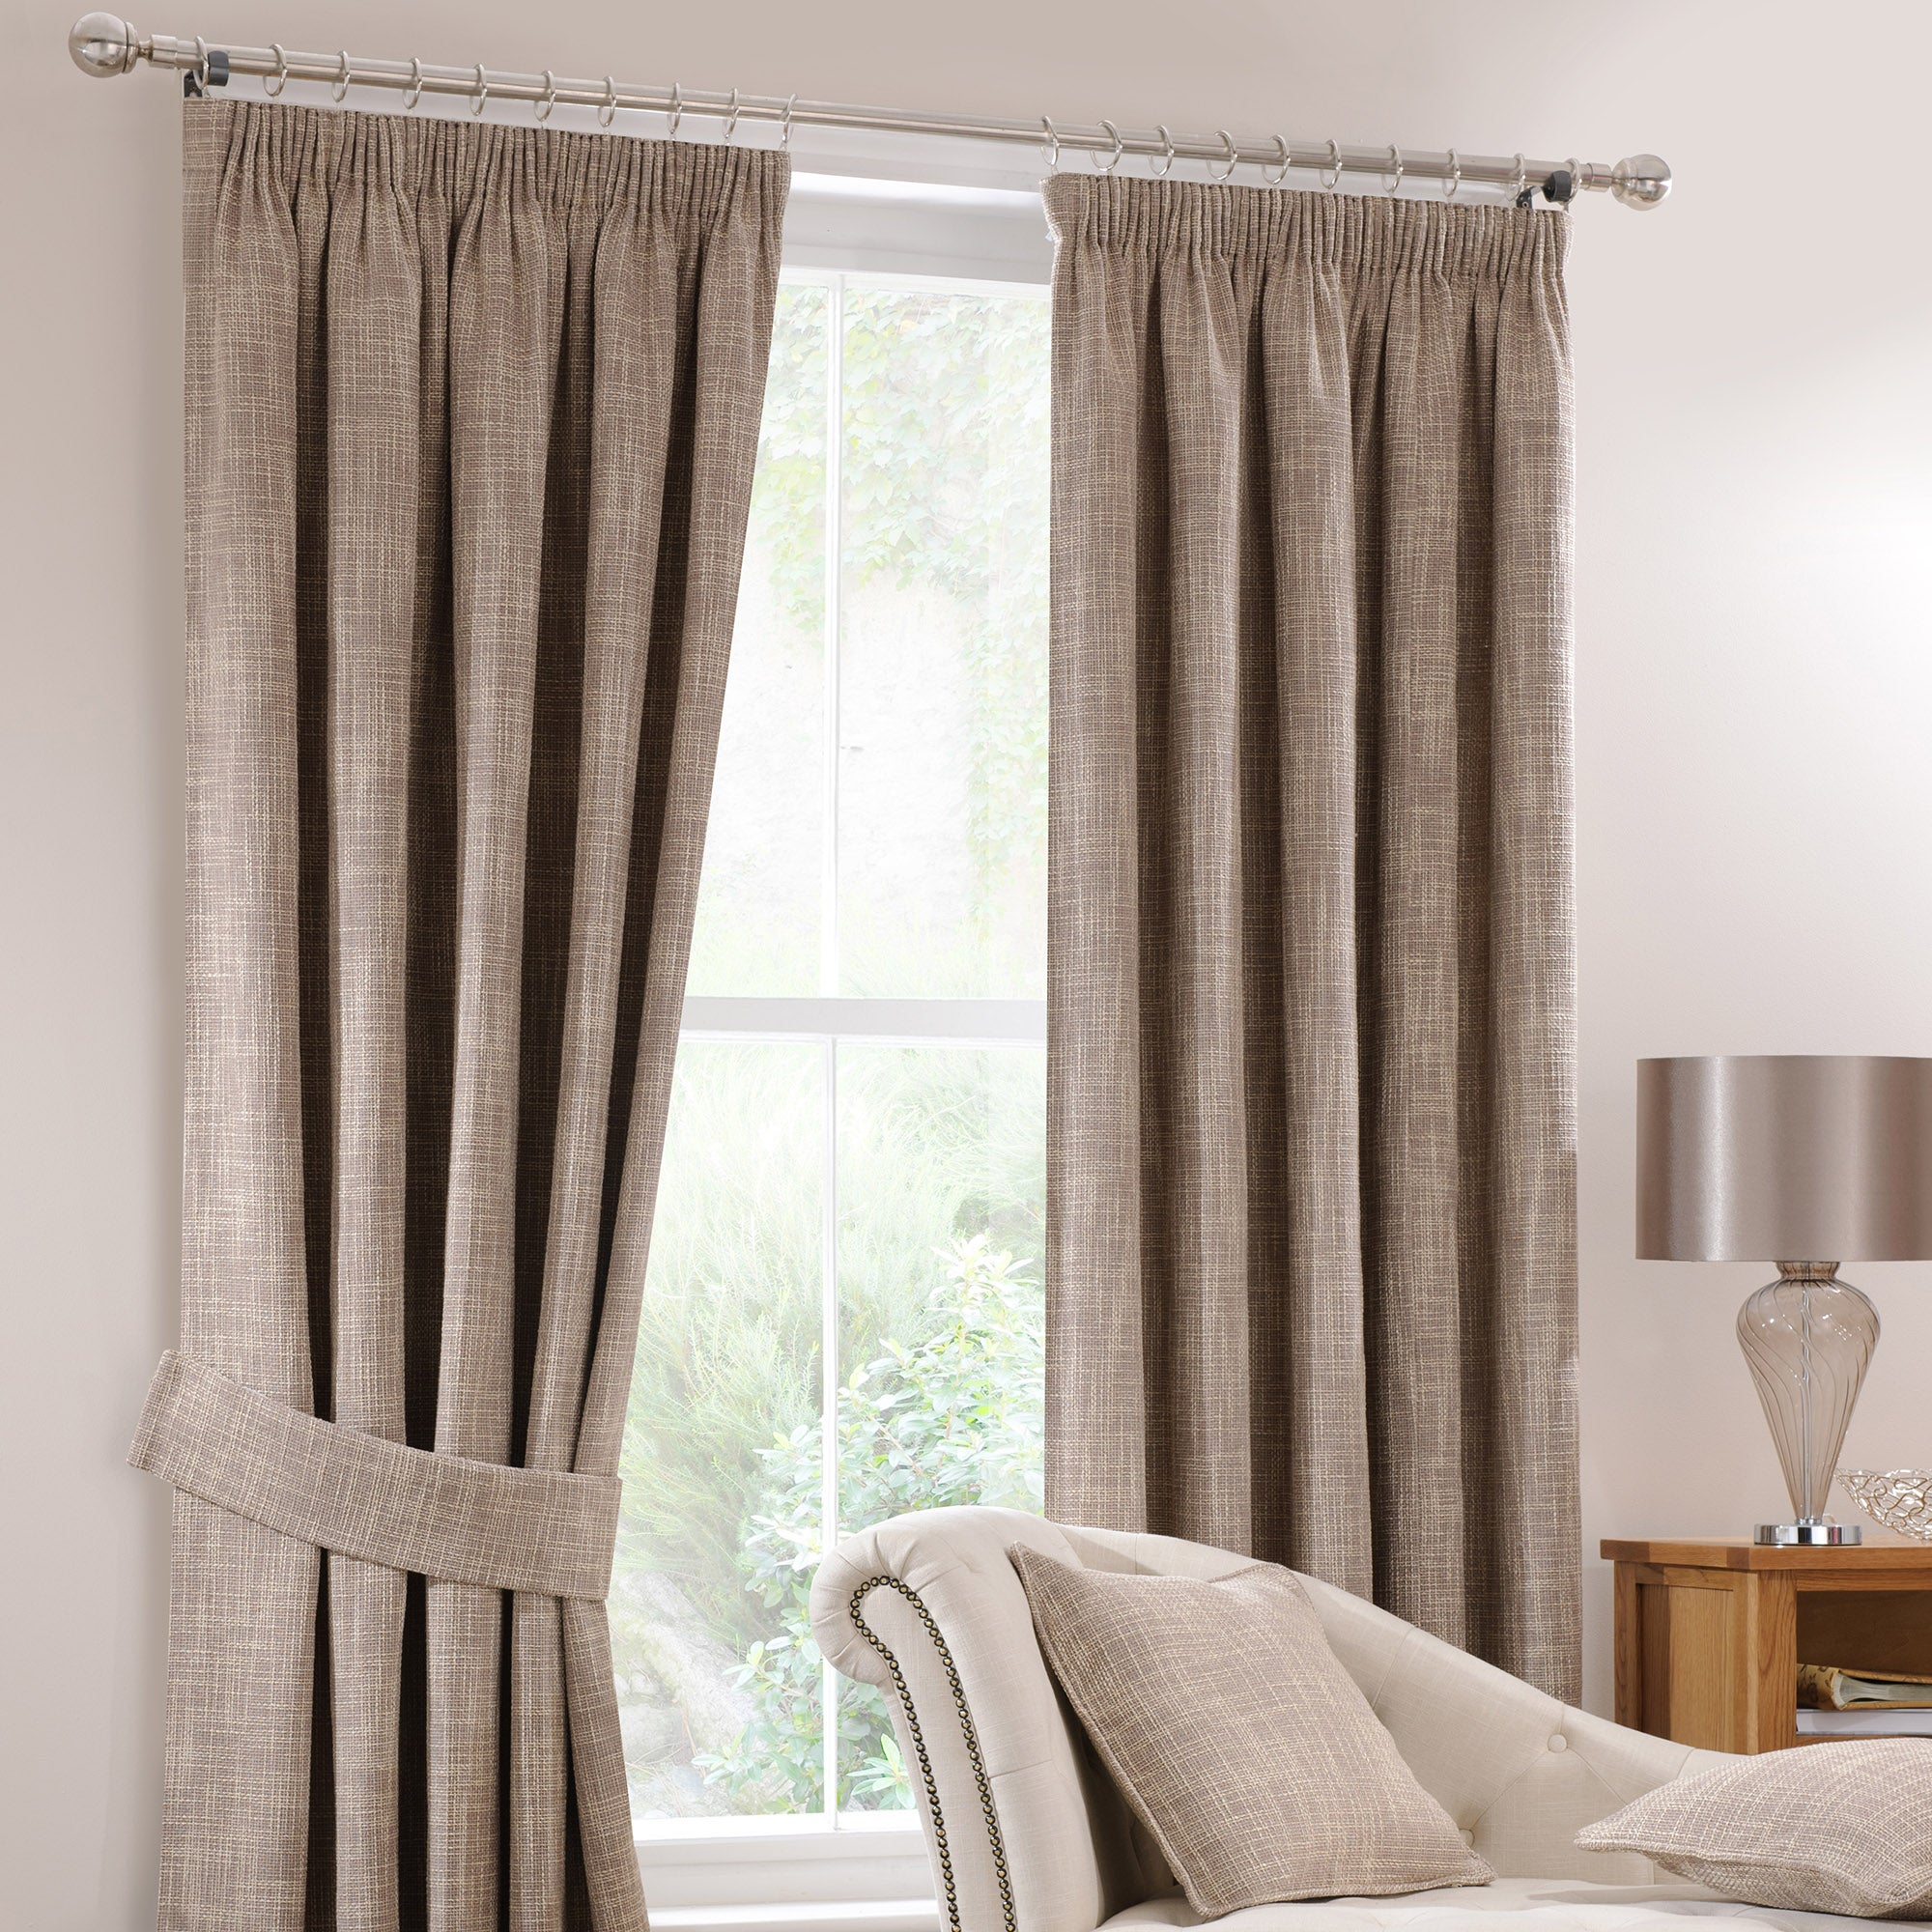 Mink Lorenza Lined Pencil Pleat Curtains